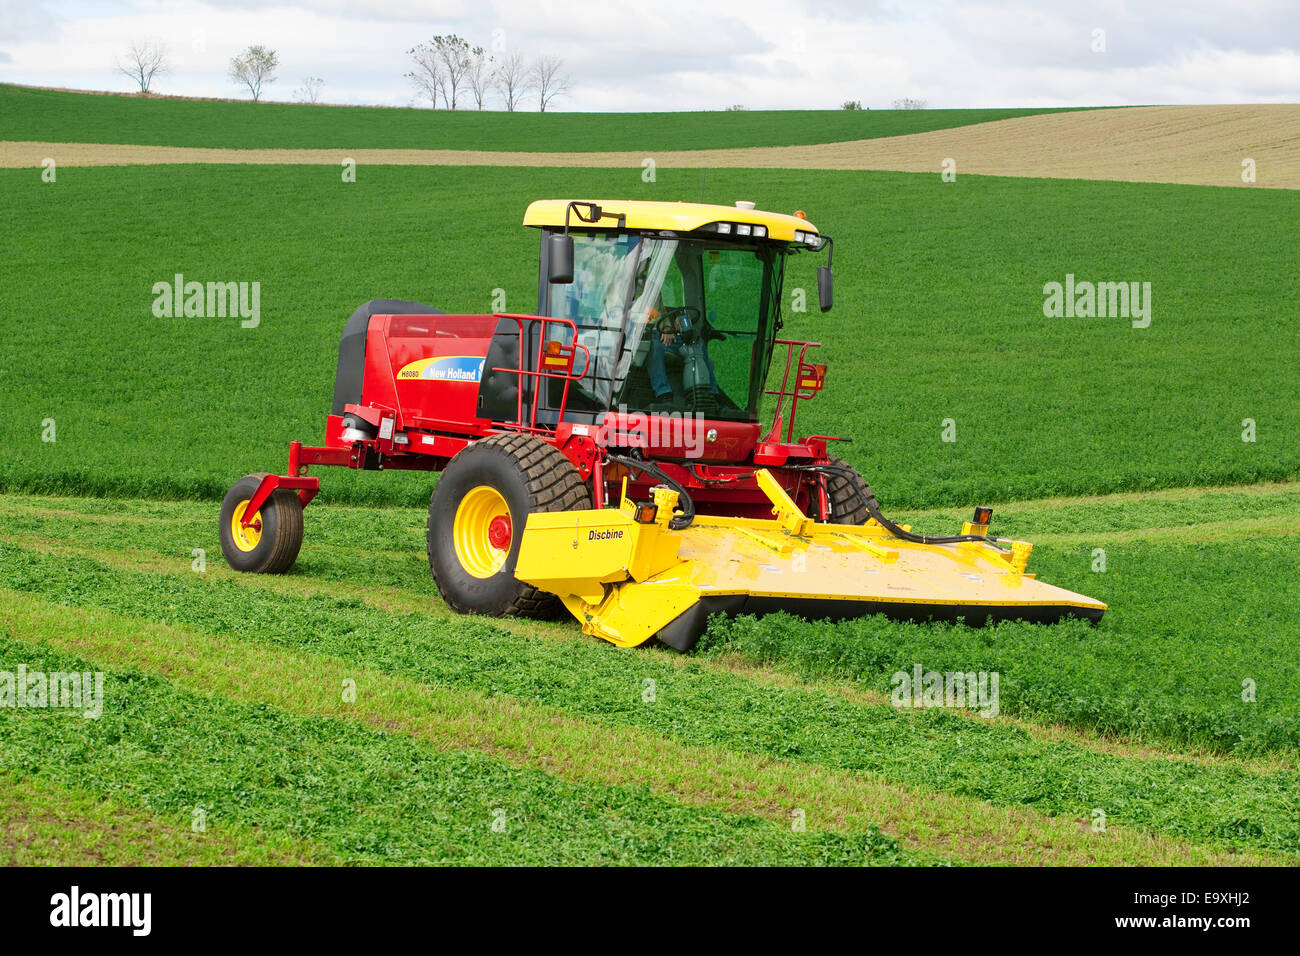 Self Propelled Cart >> Agriculture - A self propelled New Holland Discmower silage harvester Stock Photo: 74957962 - Alamy